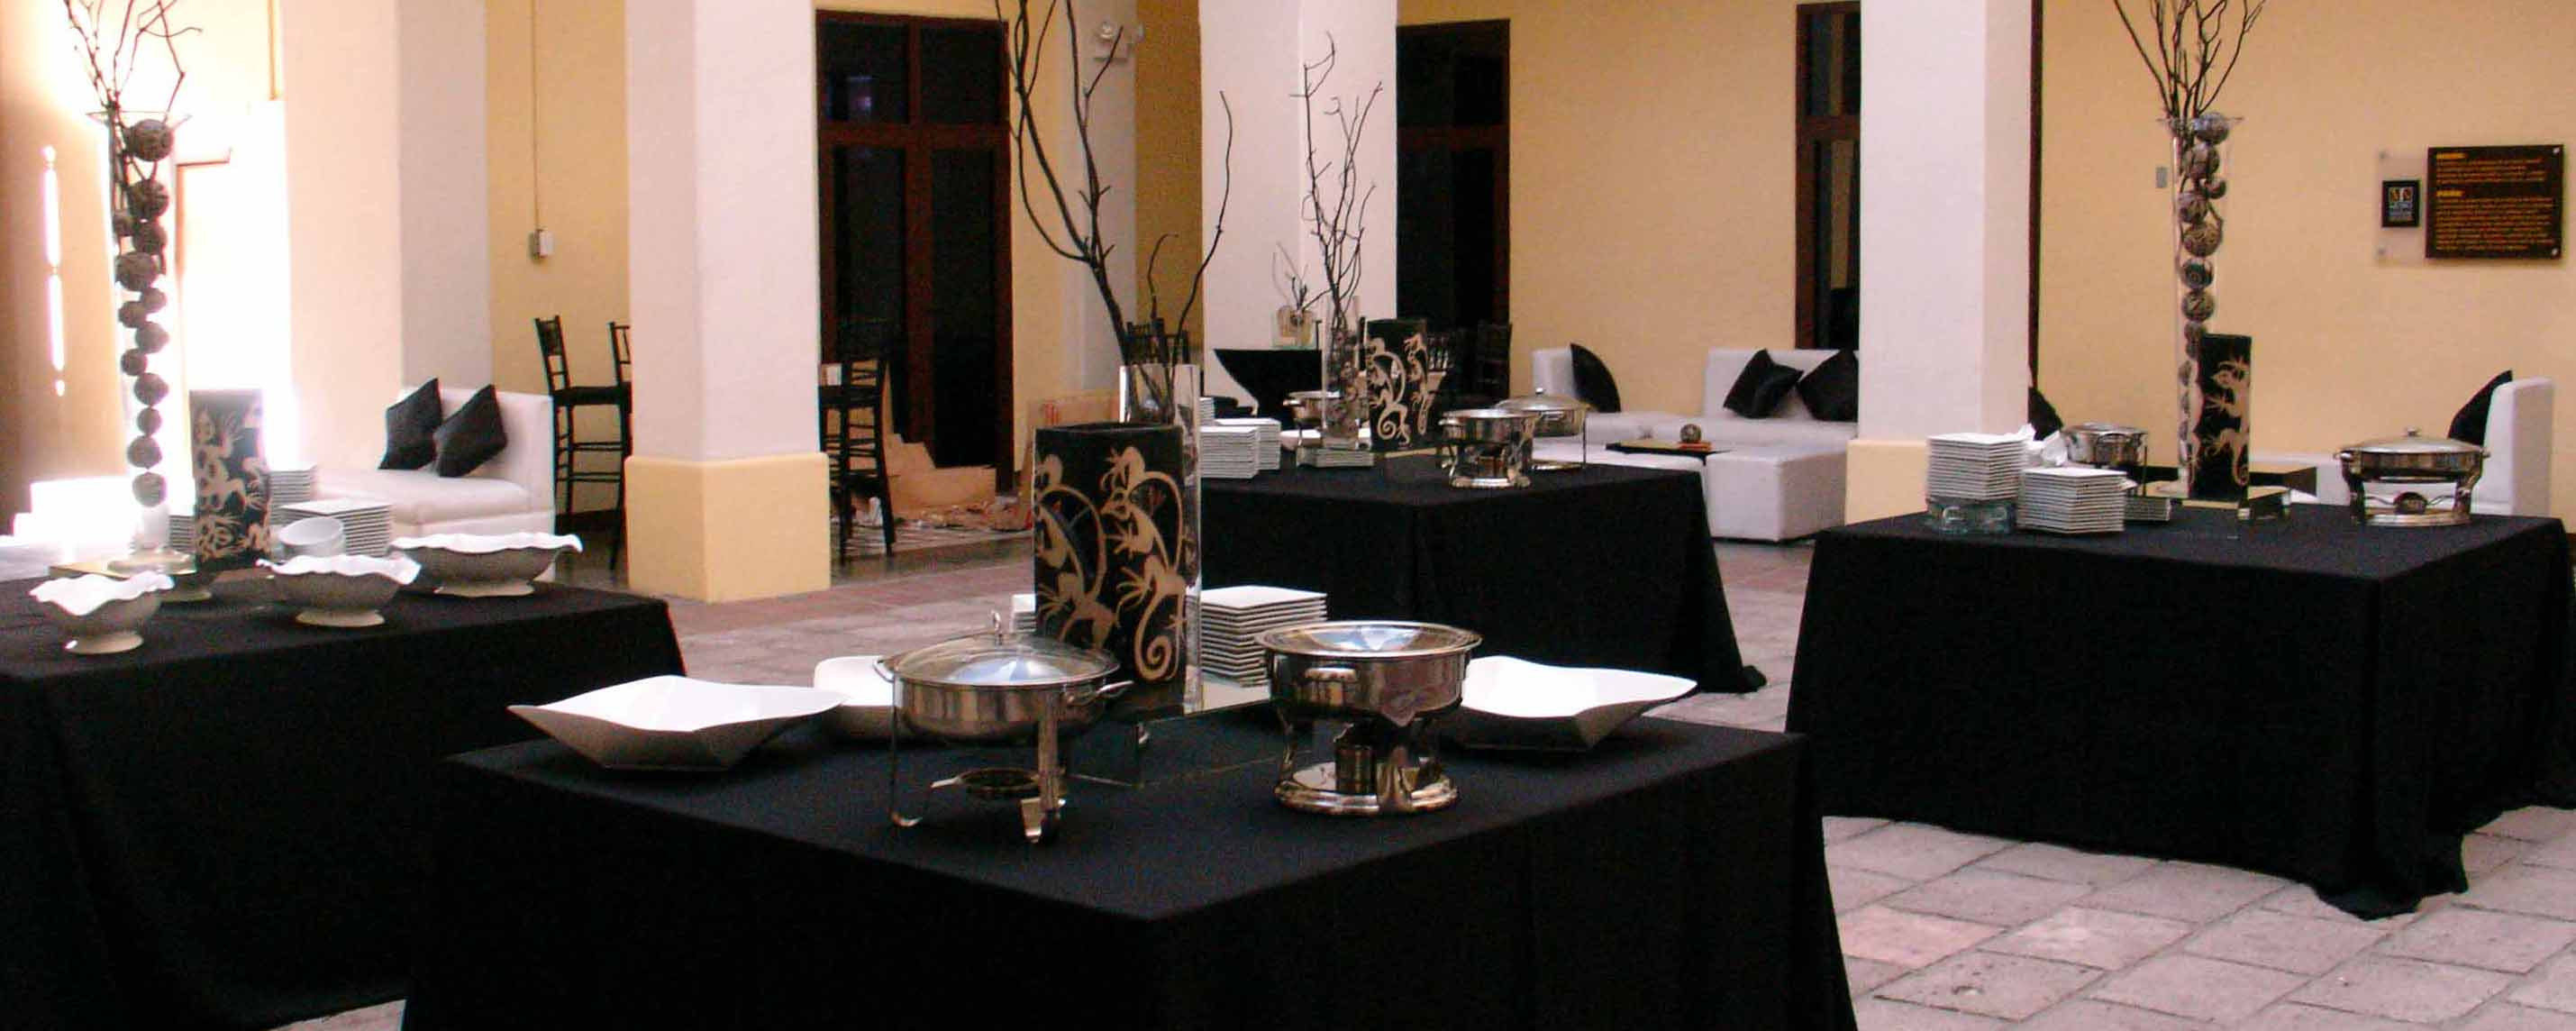 eventos-patio-oeste